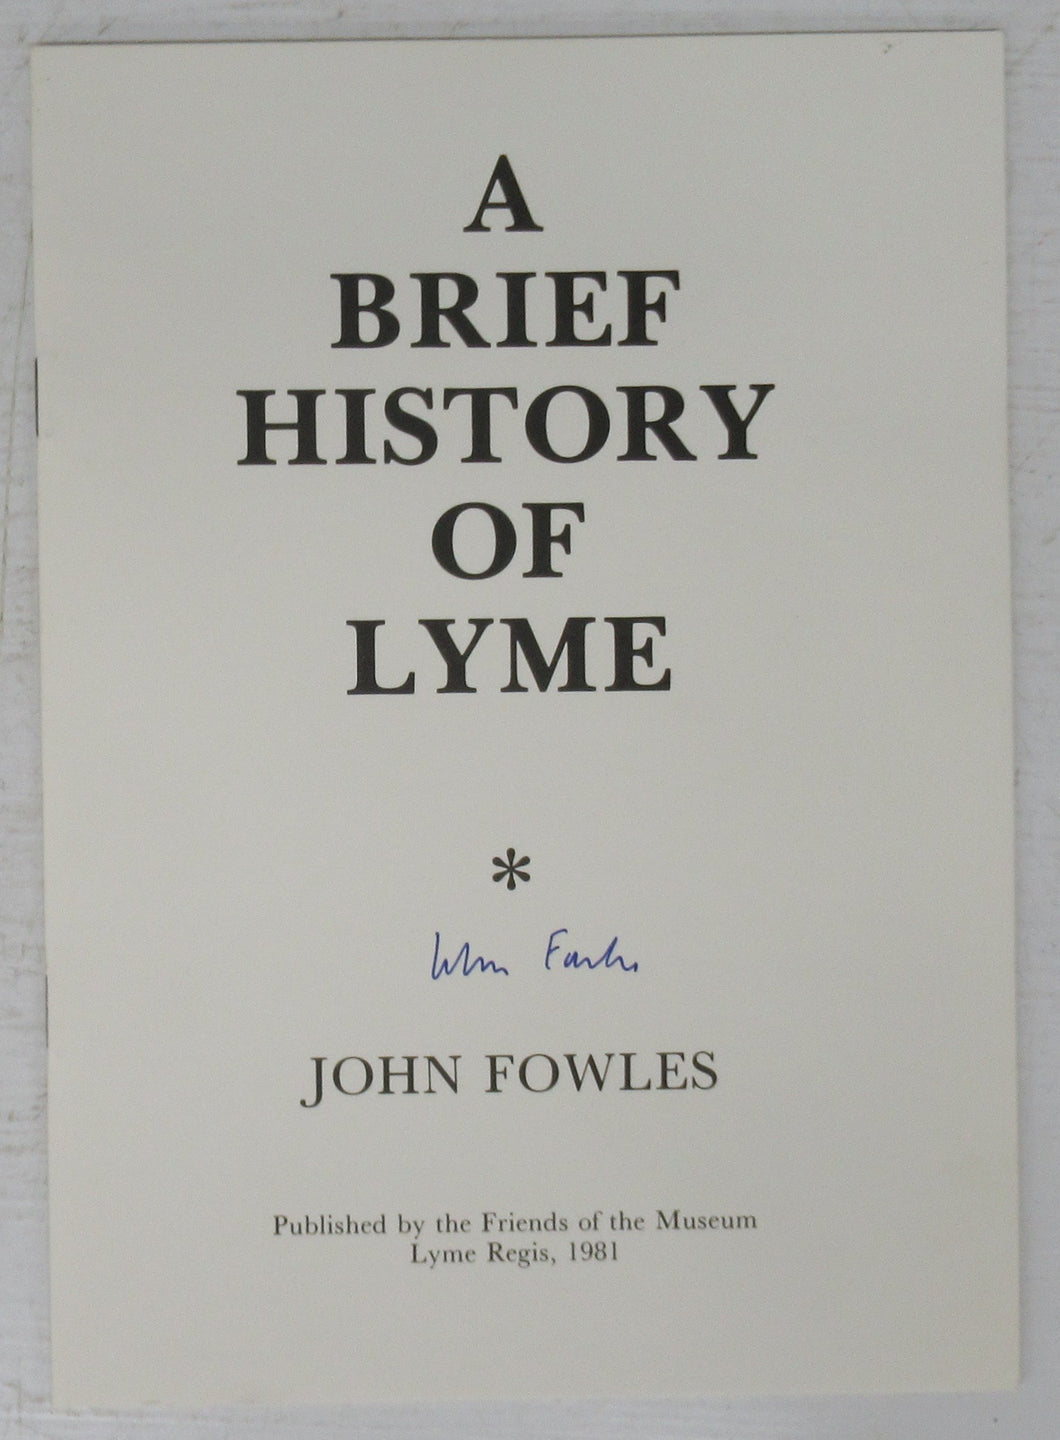 A Brief History of Lyme